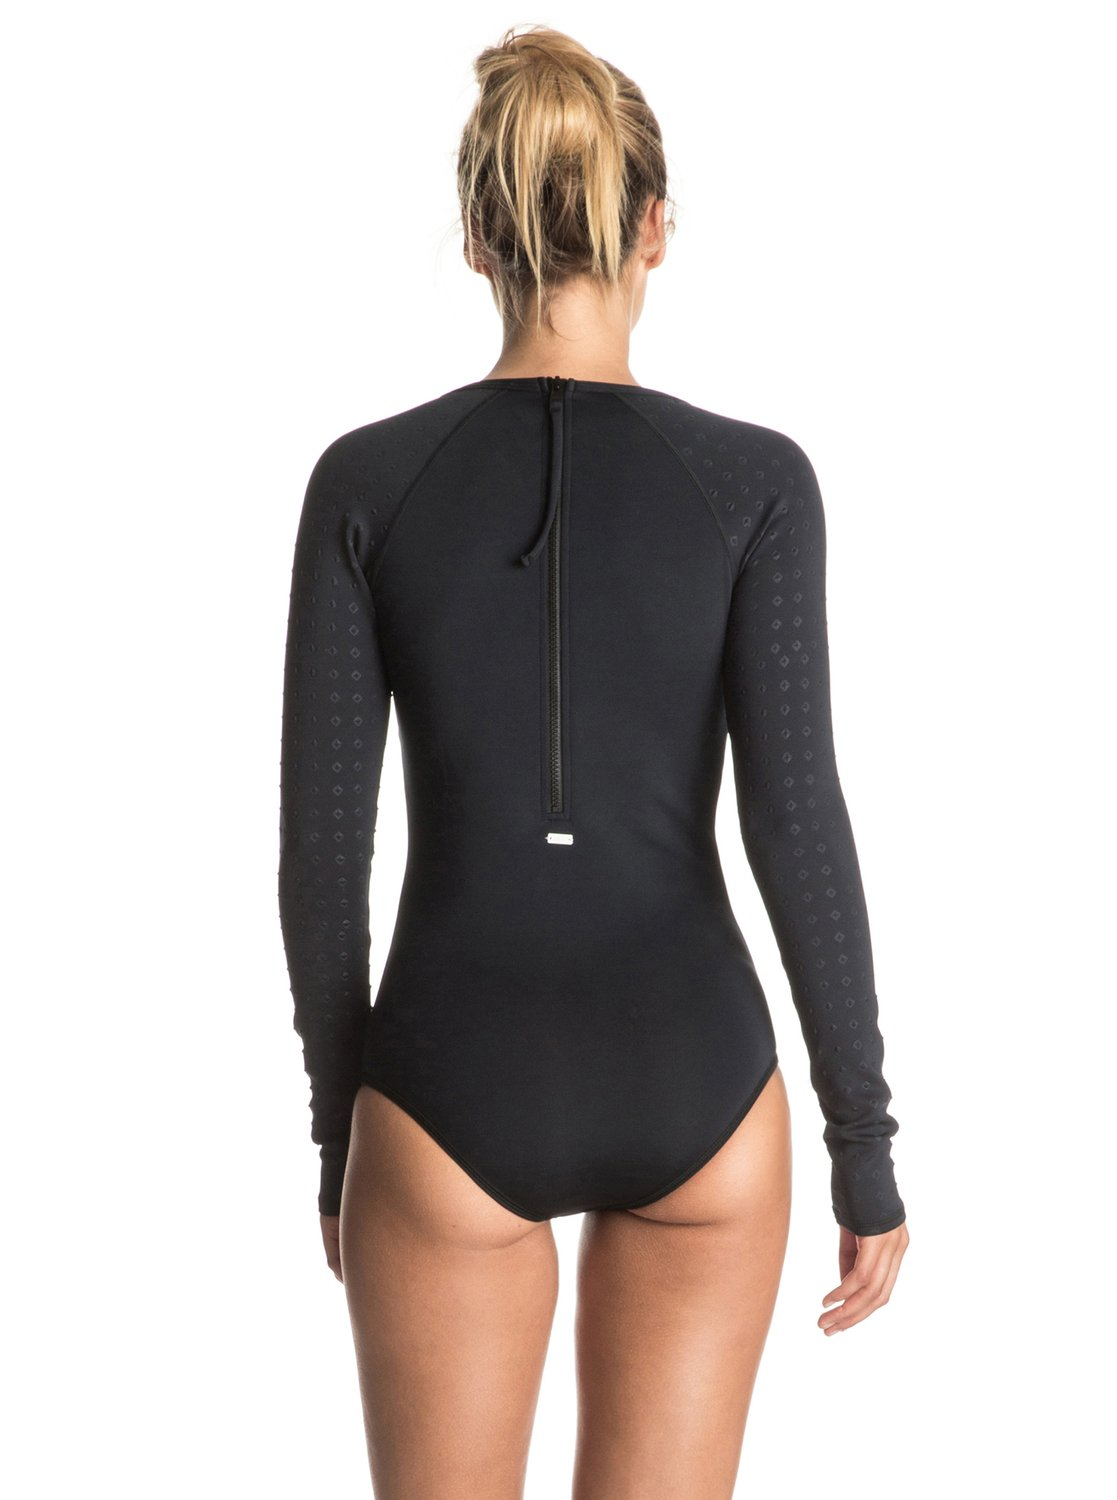 Shop the largest selection of Women's Longsleeve One Piece Swimsuits at the web's most popular swim shop. Free Shipping on $49+. Low Price Guarantee. + Brands. 24/7 Customer Service.